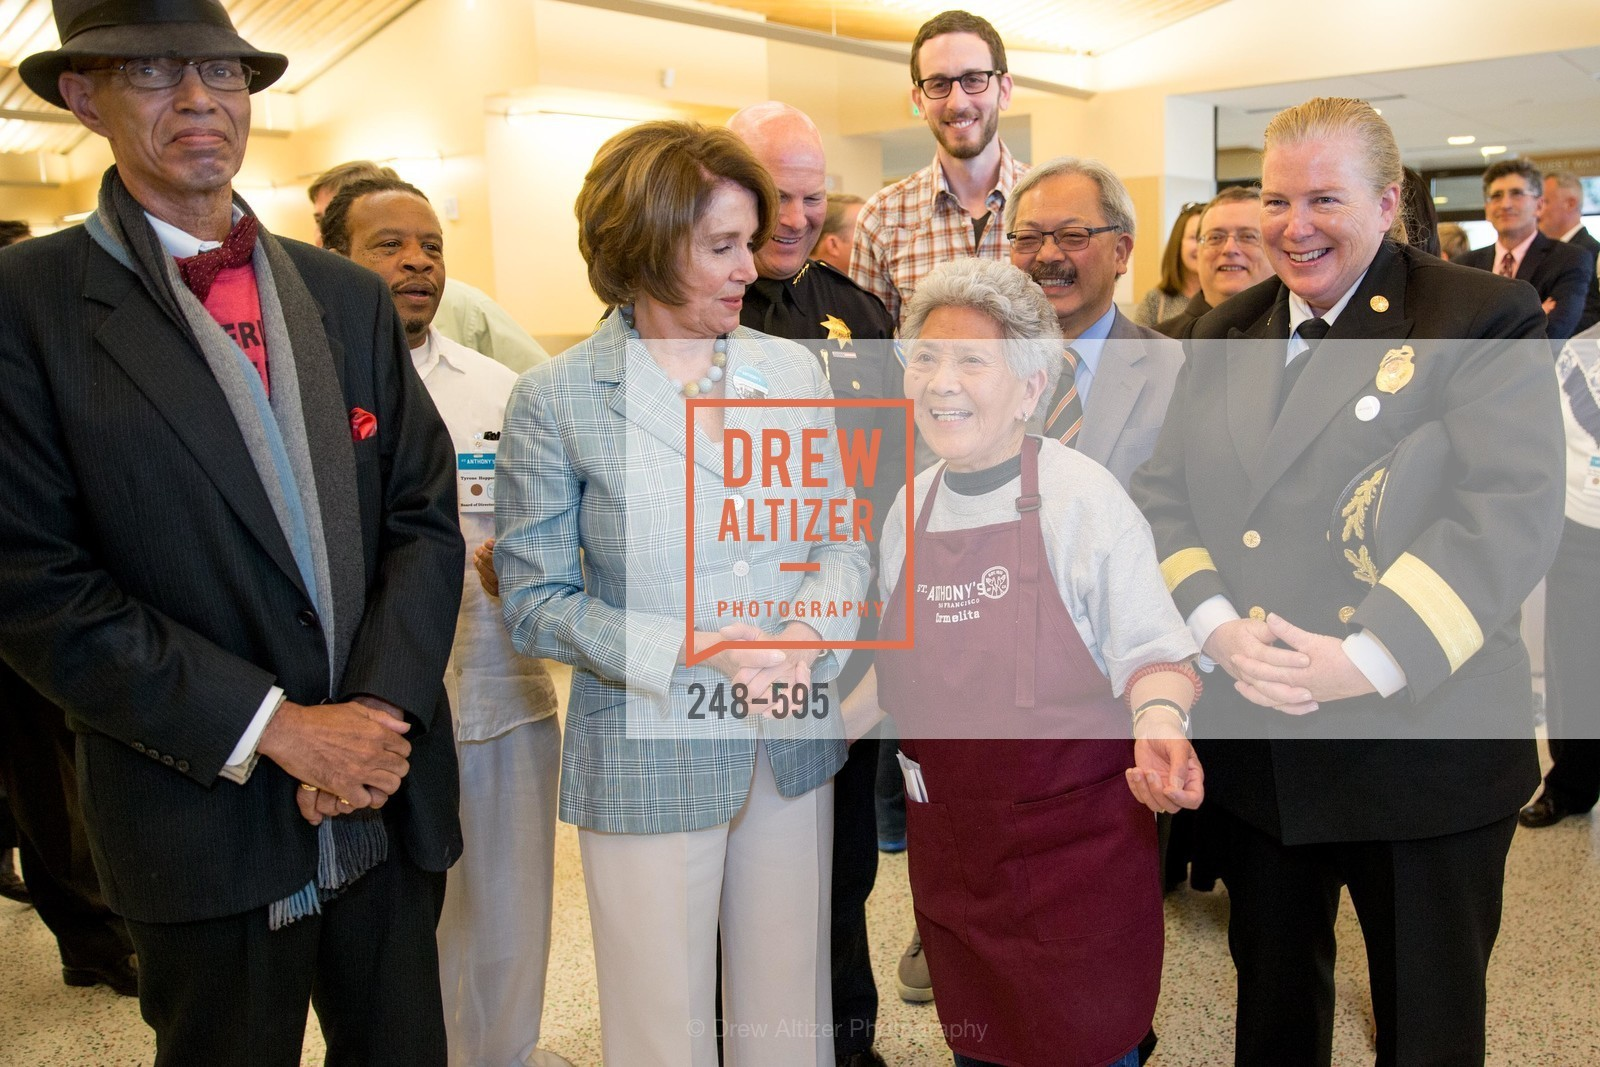 Del Seymour, Nancy Pelosi, Carmelita Lozano, Joanne Hayes-White, ST. ANTHONY'S Dining Room Ribbon Cutting Ceremony, US, October 5th, 2014,Drew Altizer, Drew Altizer Photography, full-service agency, private events, San Francisco photographer, photographer california